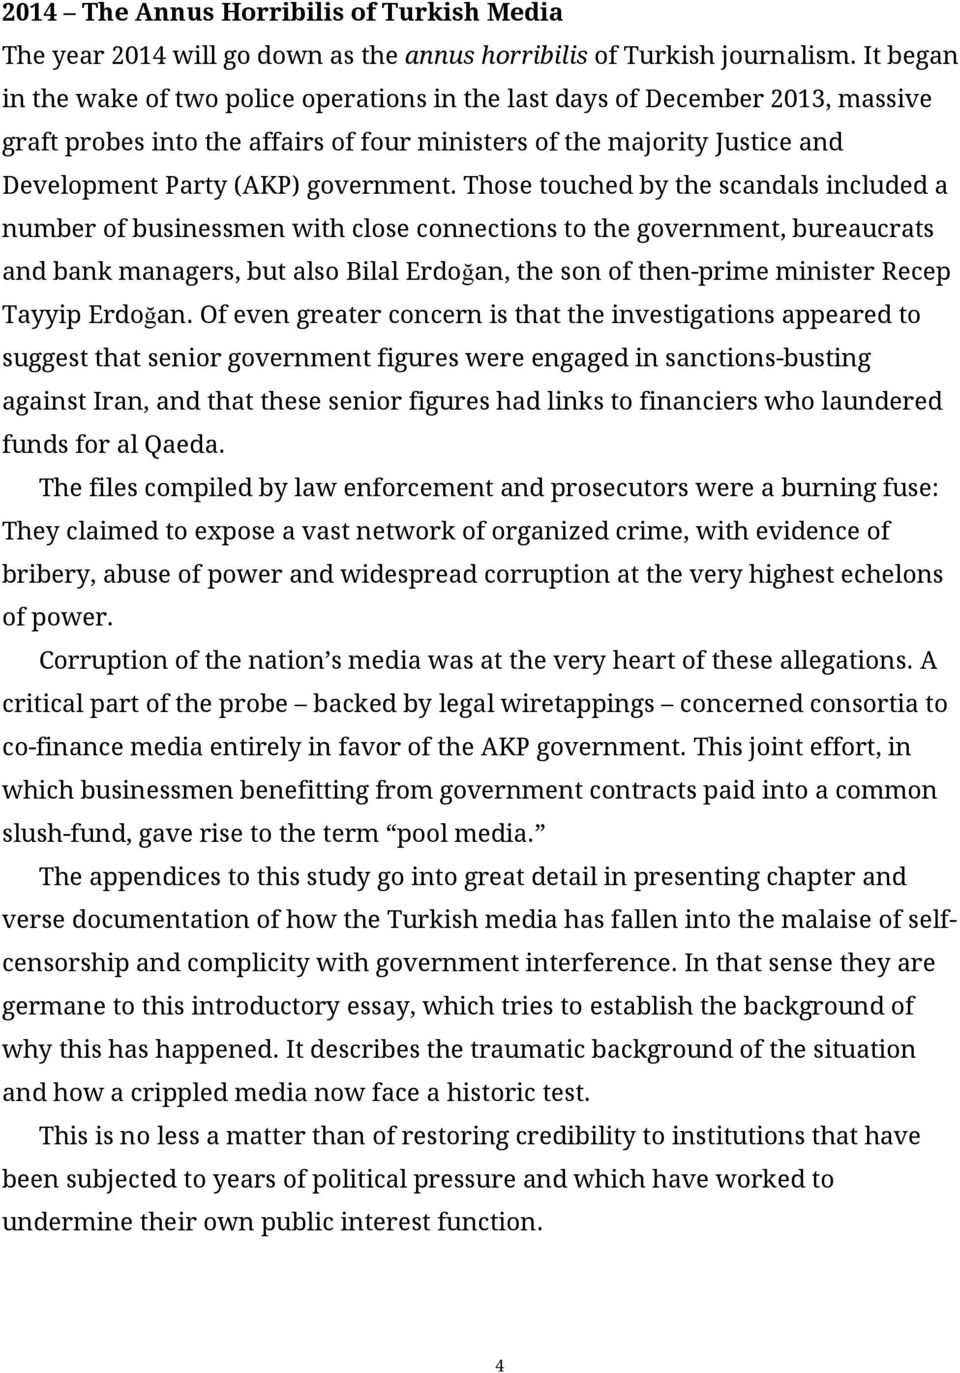 Those touched by the scandals included a number of businessmen with close connections to the government, bureaucrats and bank managers, but also Bilal Erdoğan, the son of then-prime minister Recep